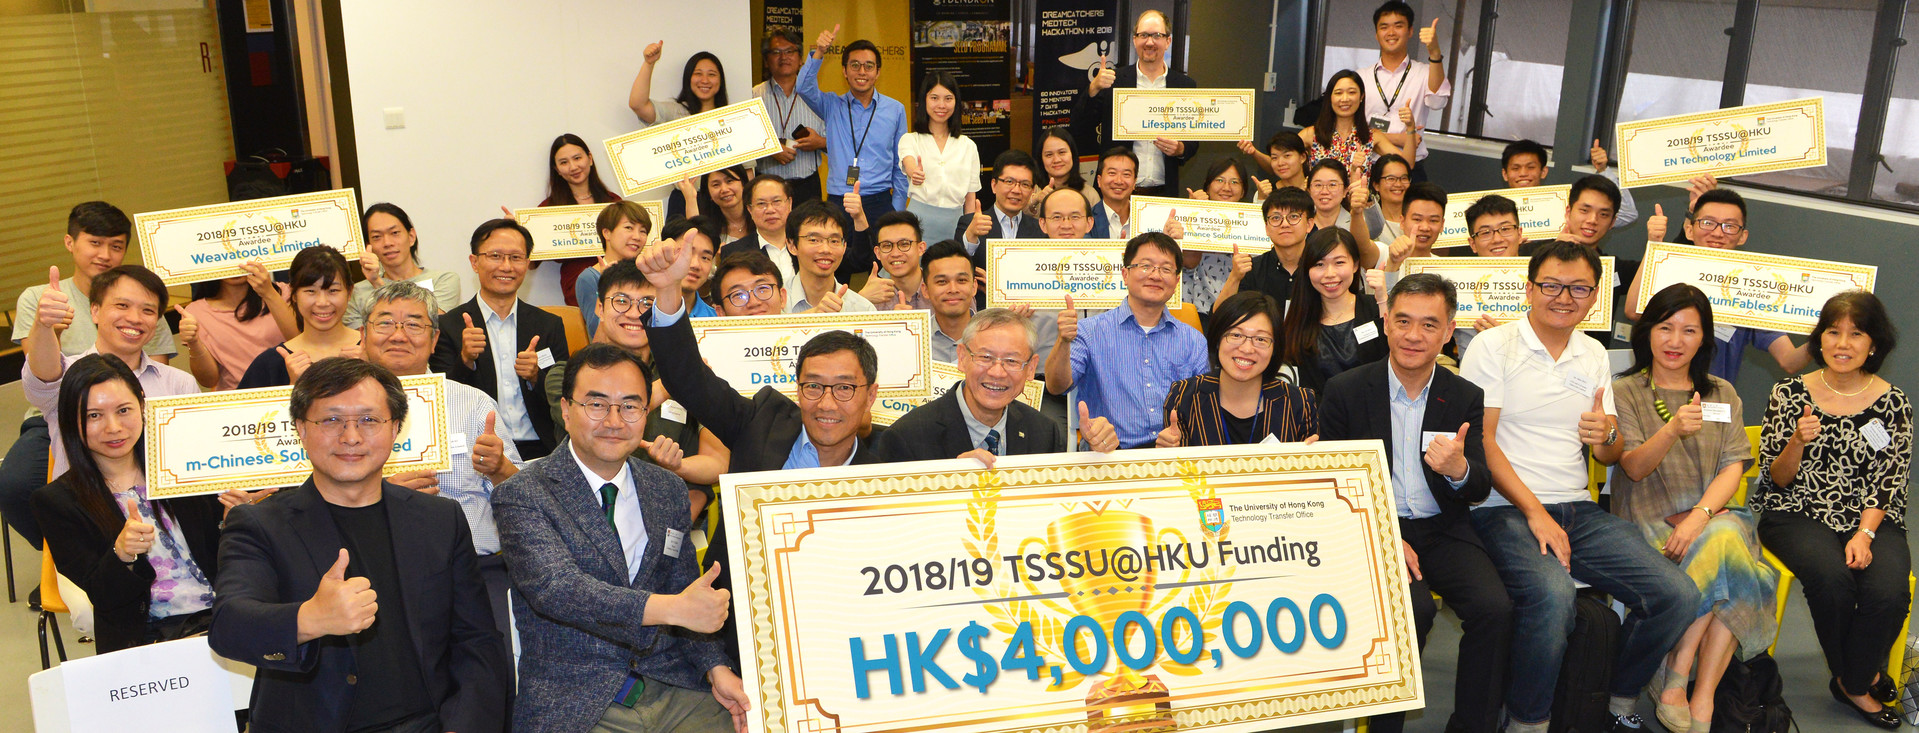 2018/19 TSSSU@HKU Award Celebration Gathering